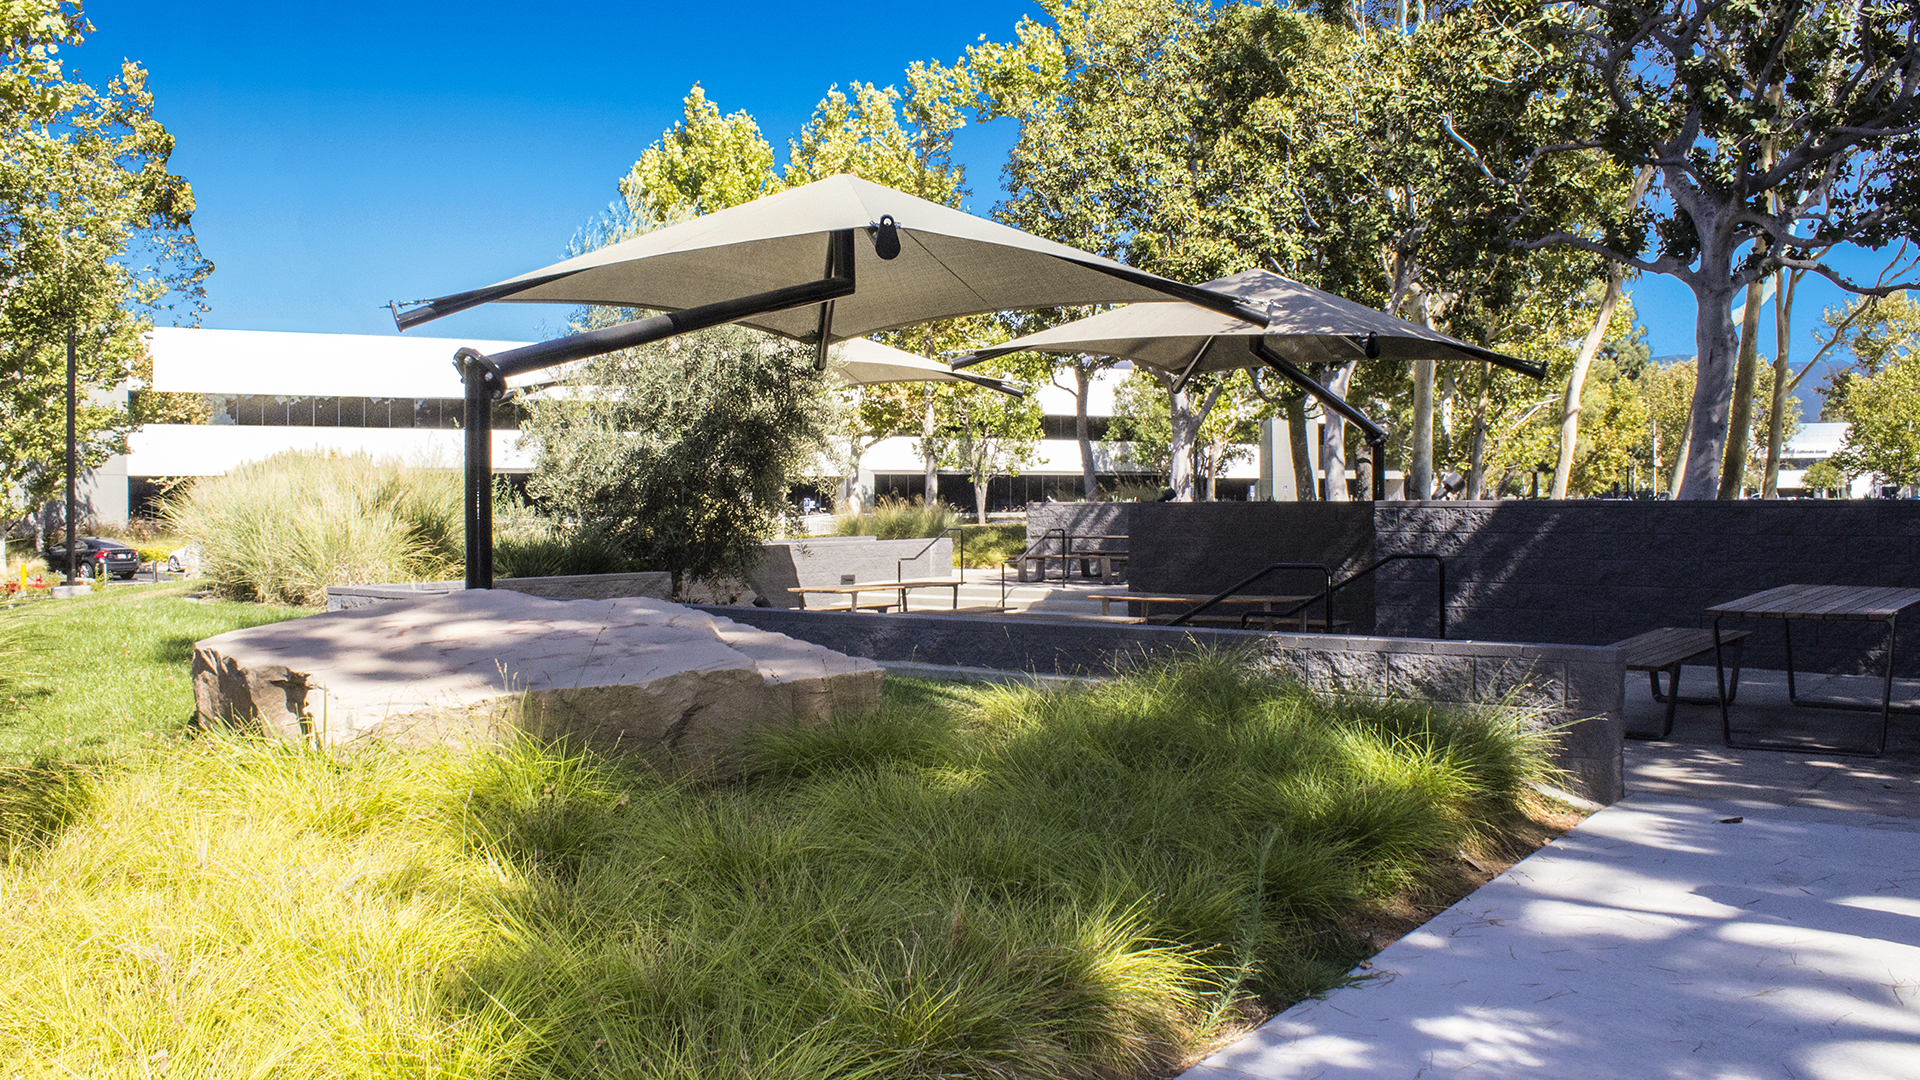 Single Post Pyramid Cantilever Fabric Shade Structure